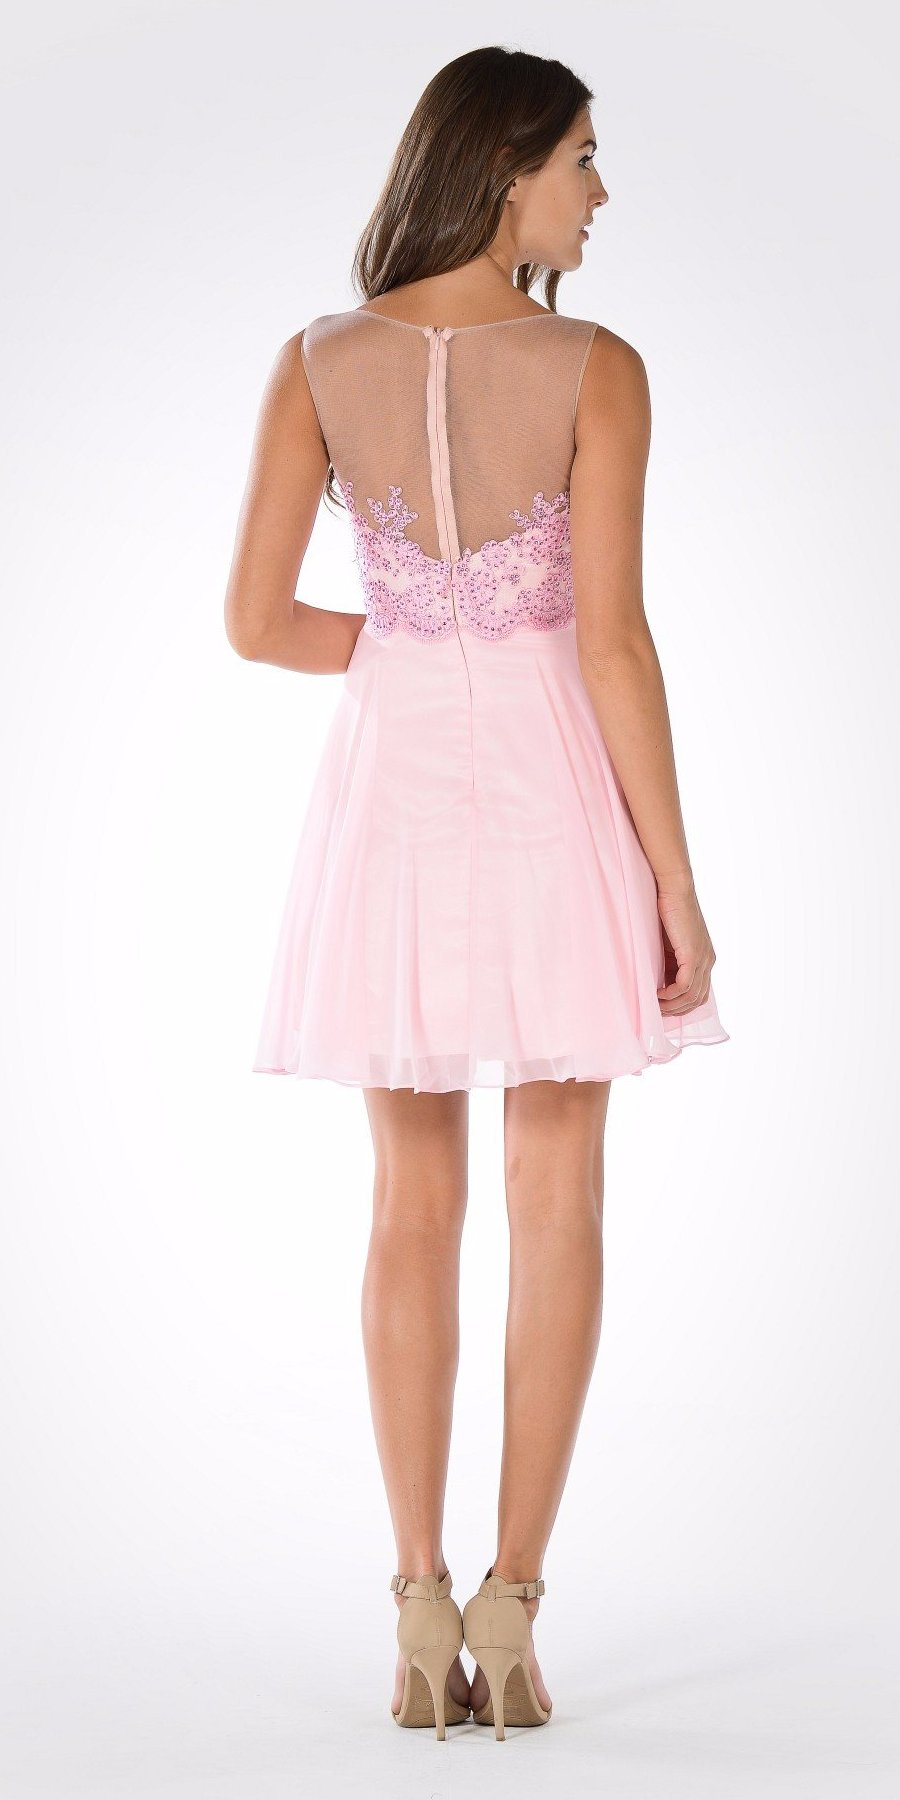 Bateau Neck Embellished Bodice Chiffon Skirt Short Party Dress Pink